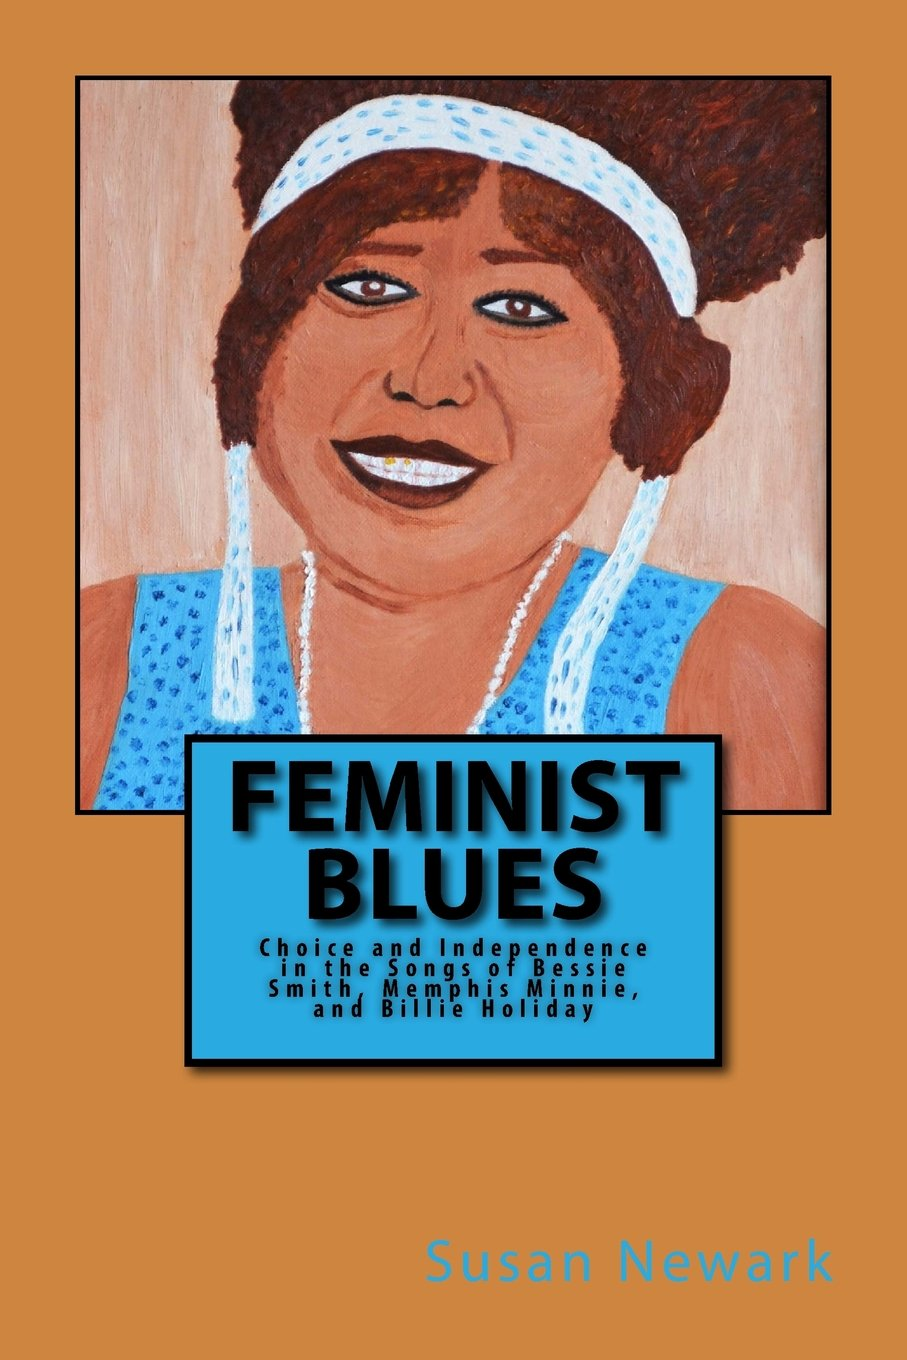 Feminist Blues: Choice and Independence in the Songs of Bessie Smith, Memphis Minnie, and Billie Holiday